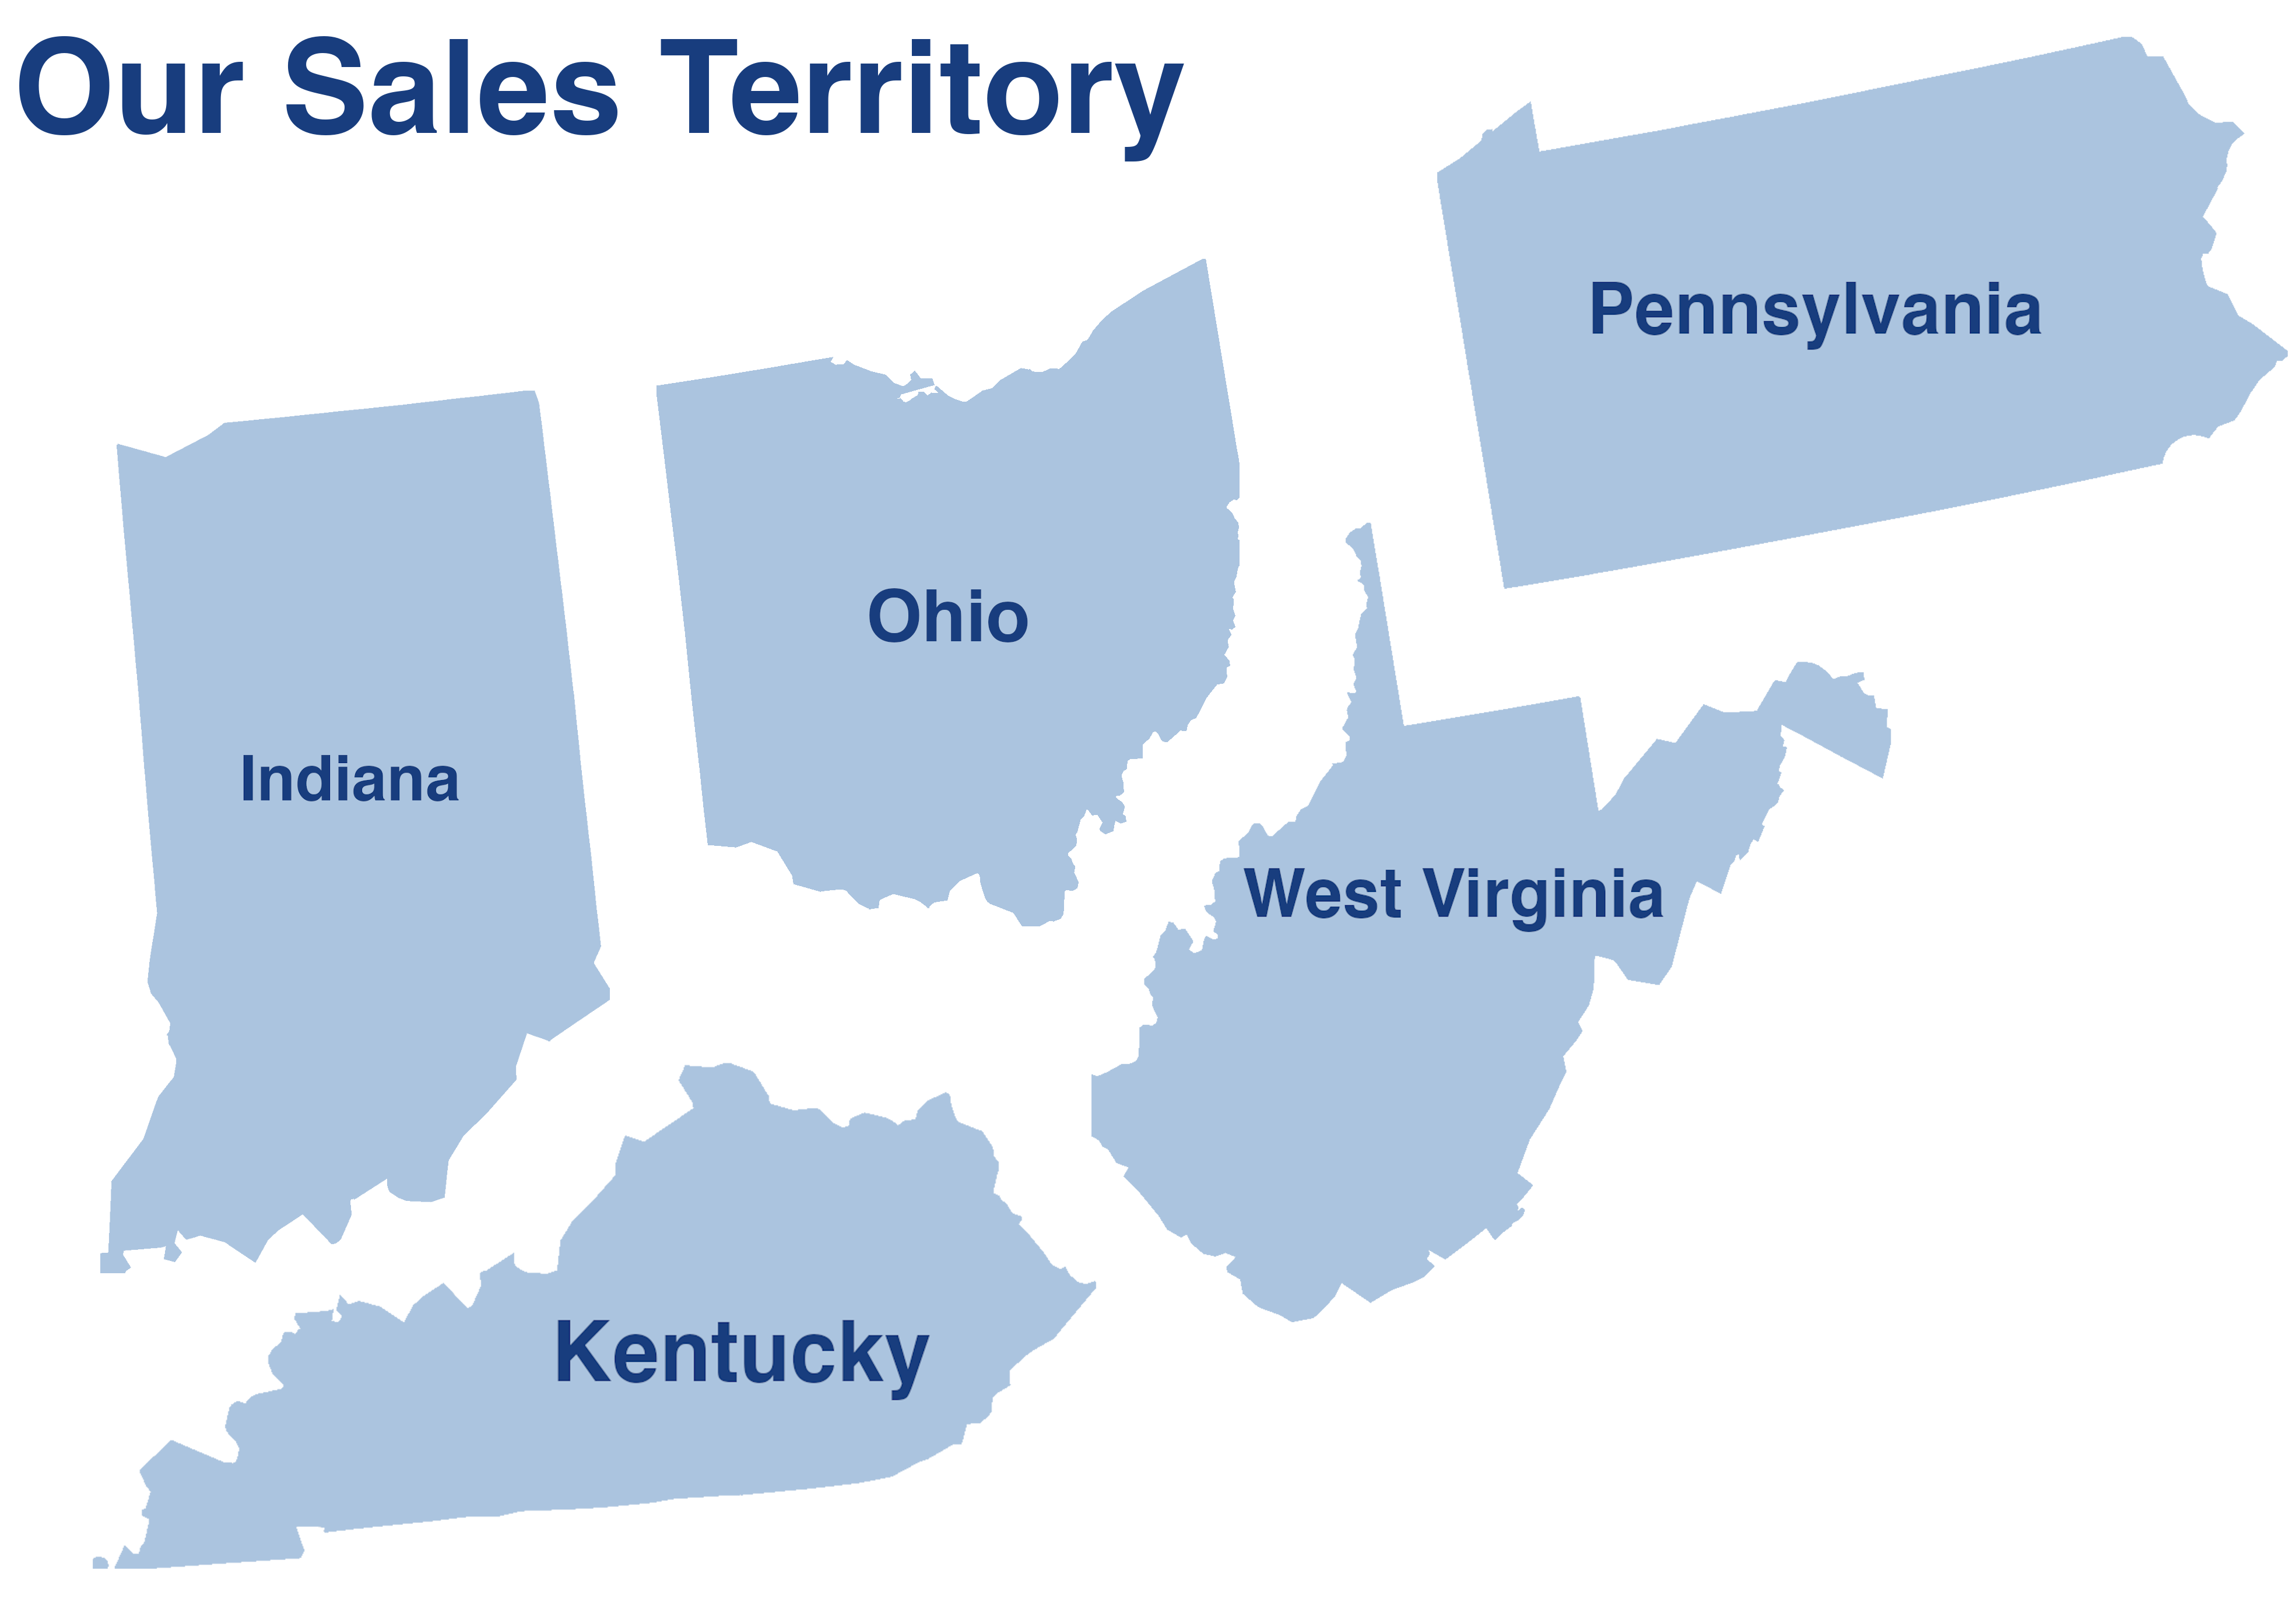 Our Sales Territory: Ohio, Indiana, Pennsylvania, Kentucky, West Virginia